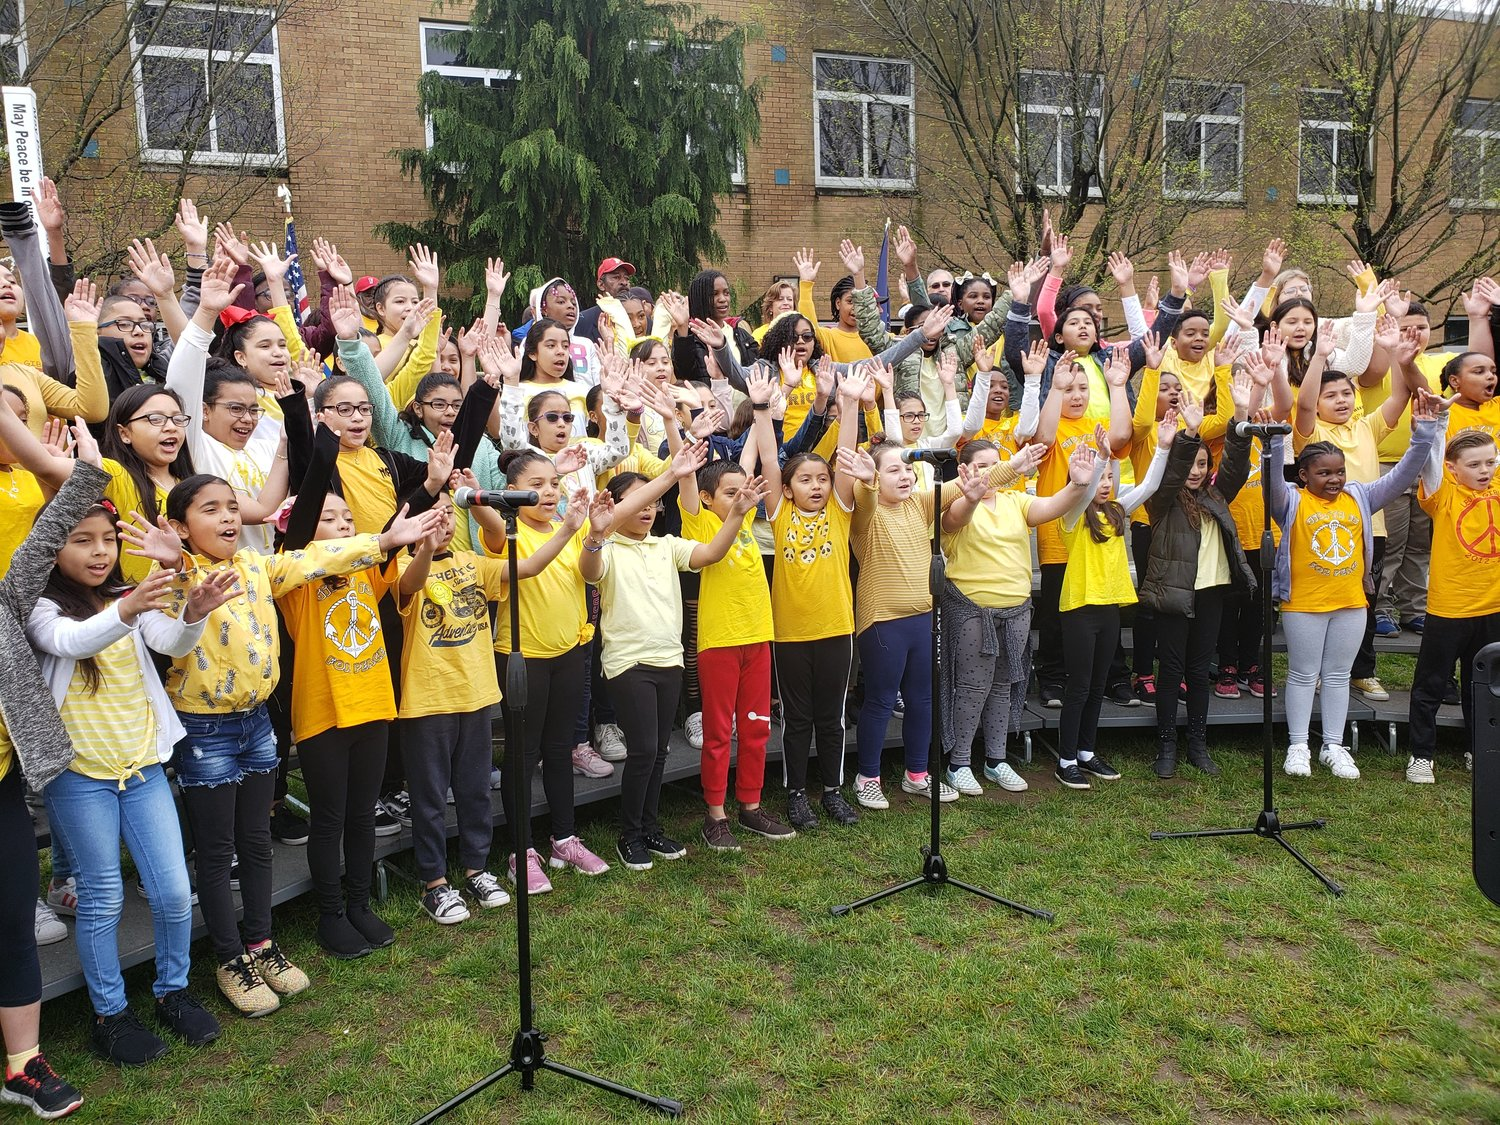 Elementary students sang songs about peace and unity in the opening ceremony.